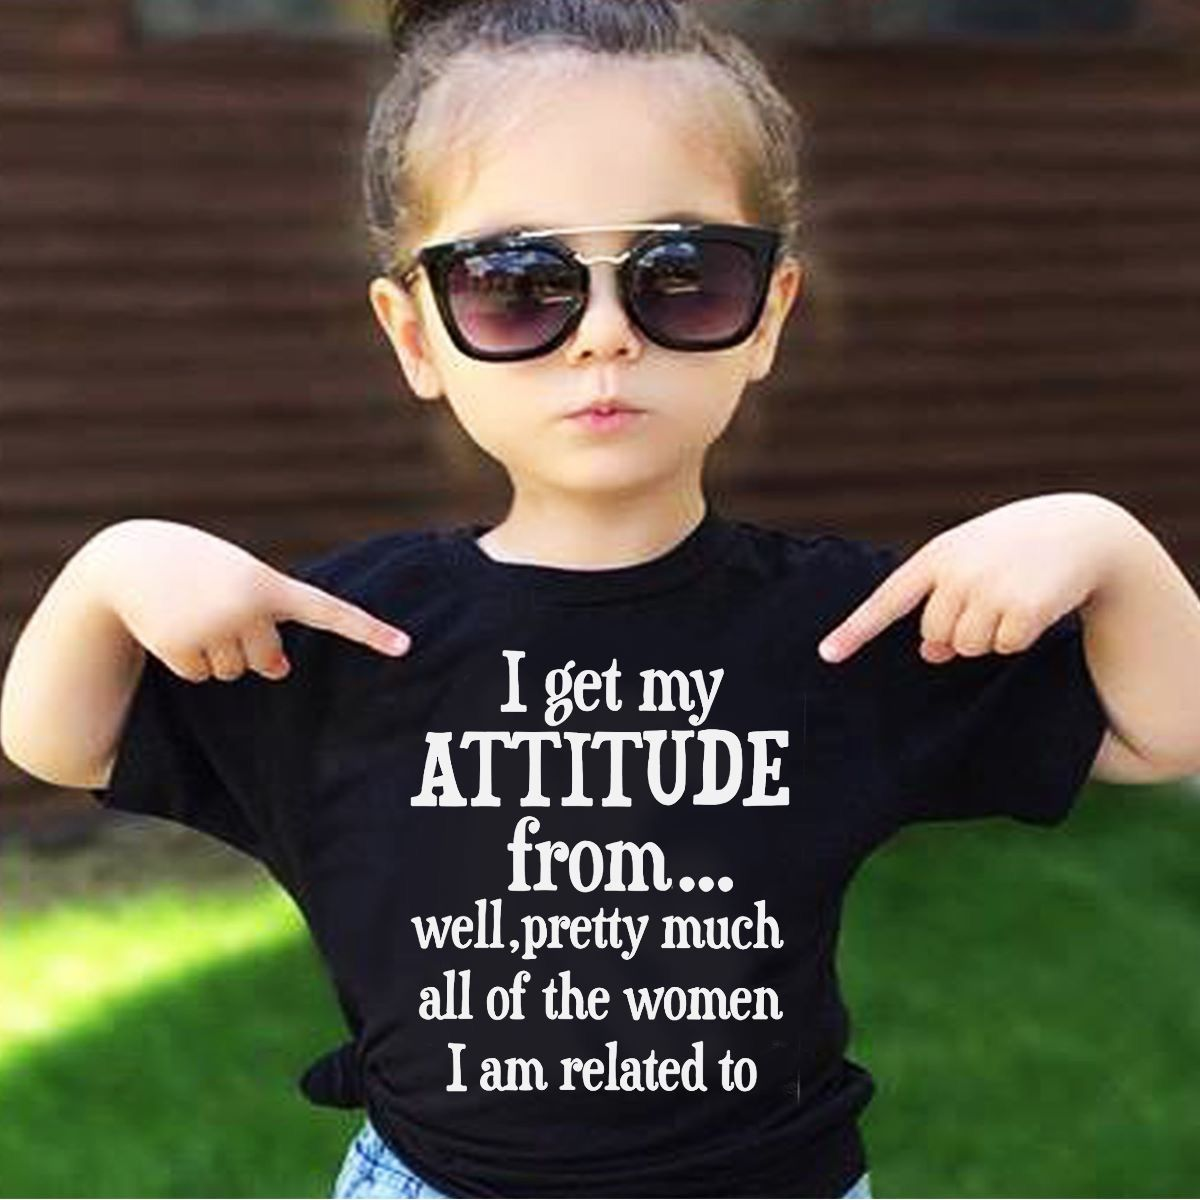 Father Daughter Quotes Wallpapers In Urdu If I Ever Have A Daughter She Needs This Shirt Cute